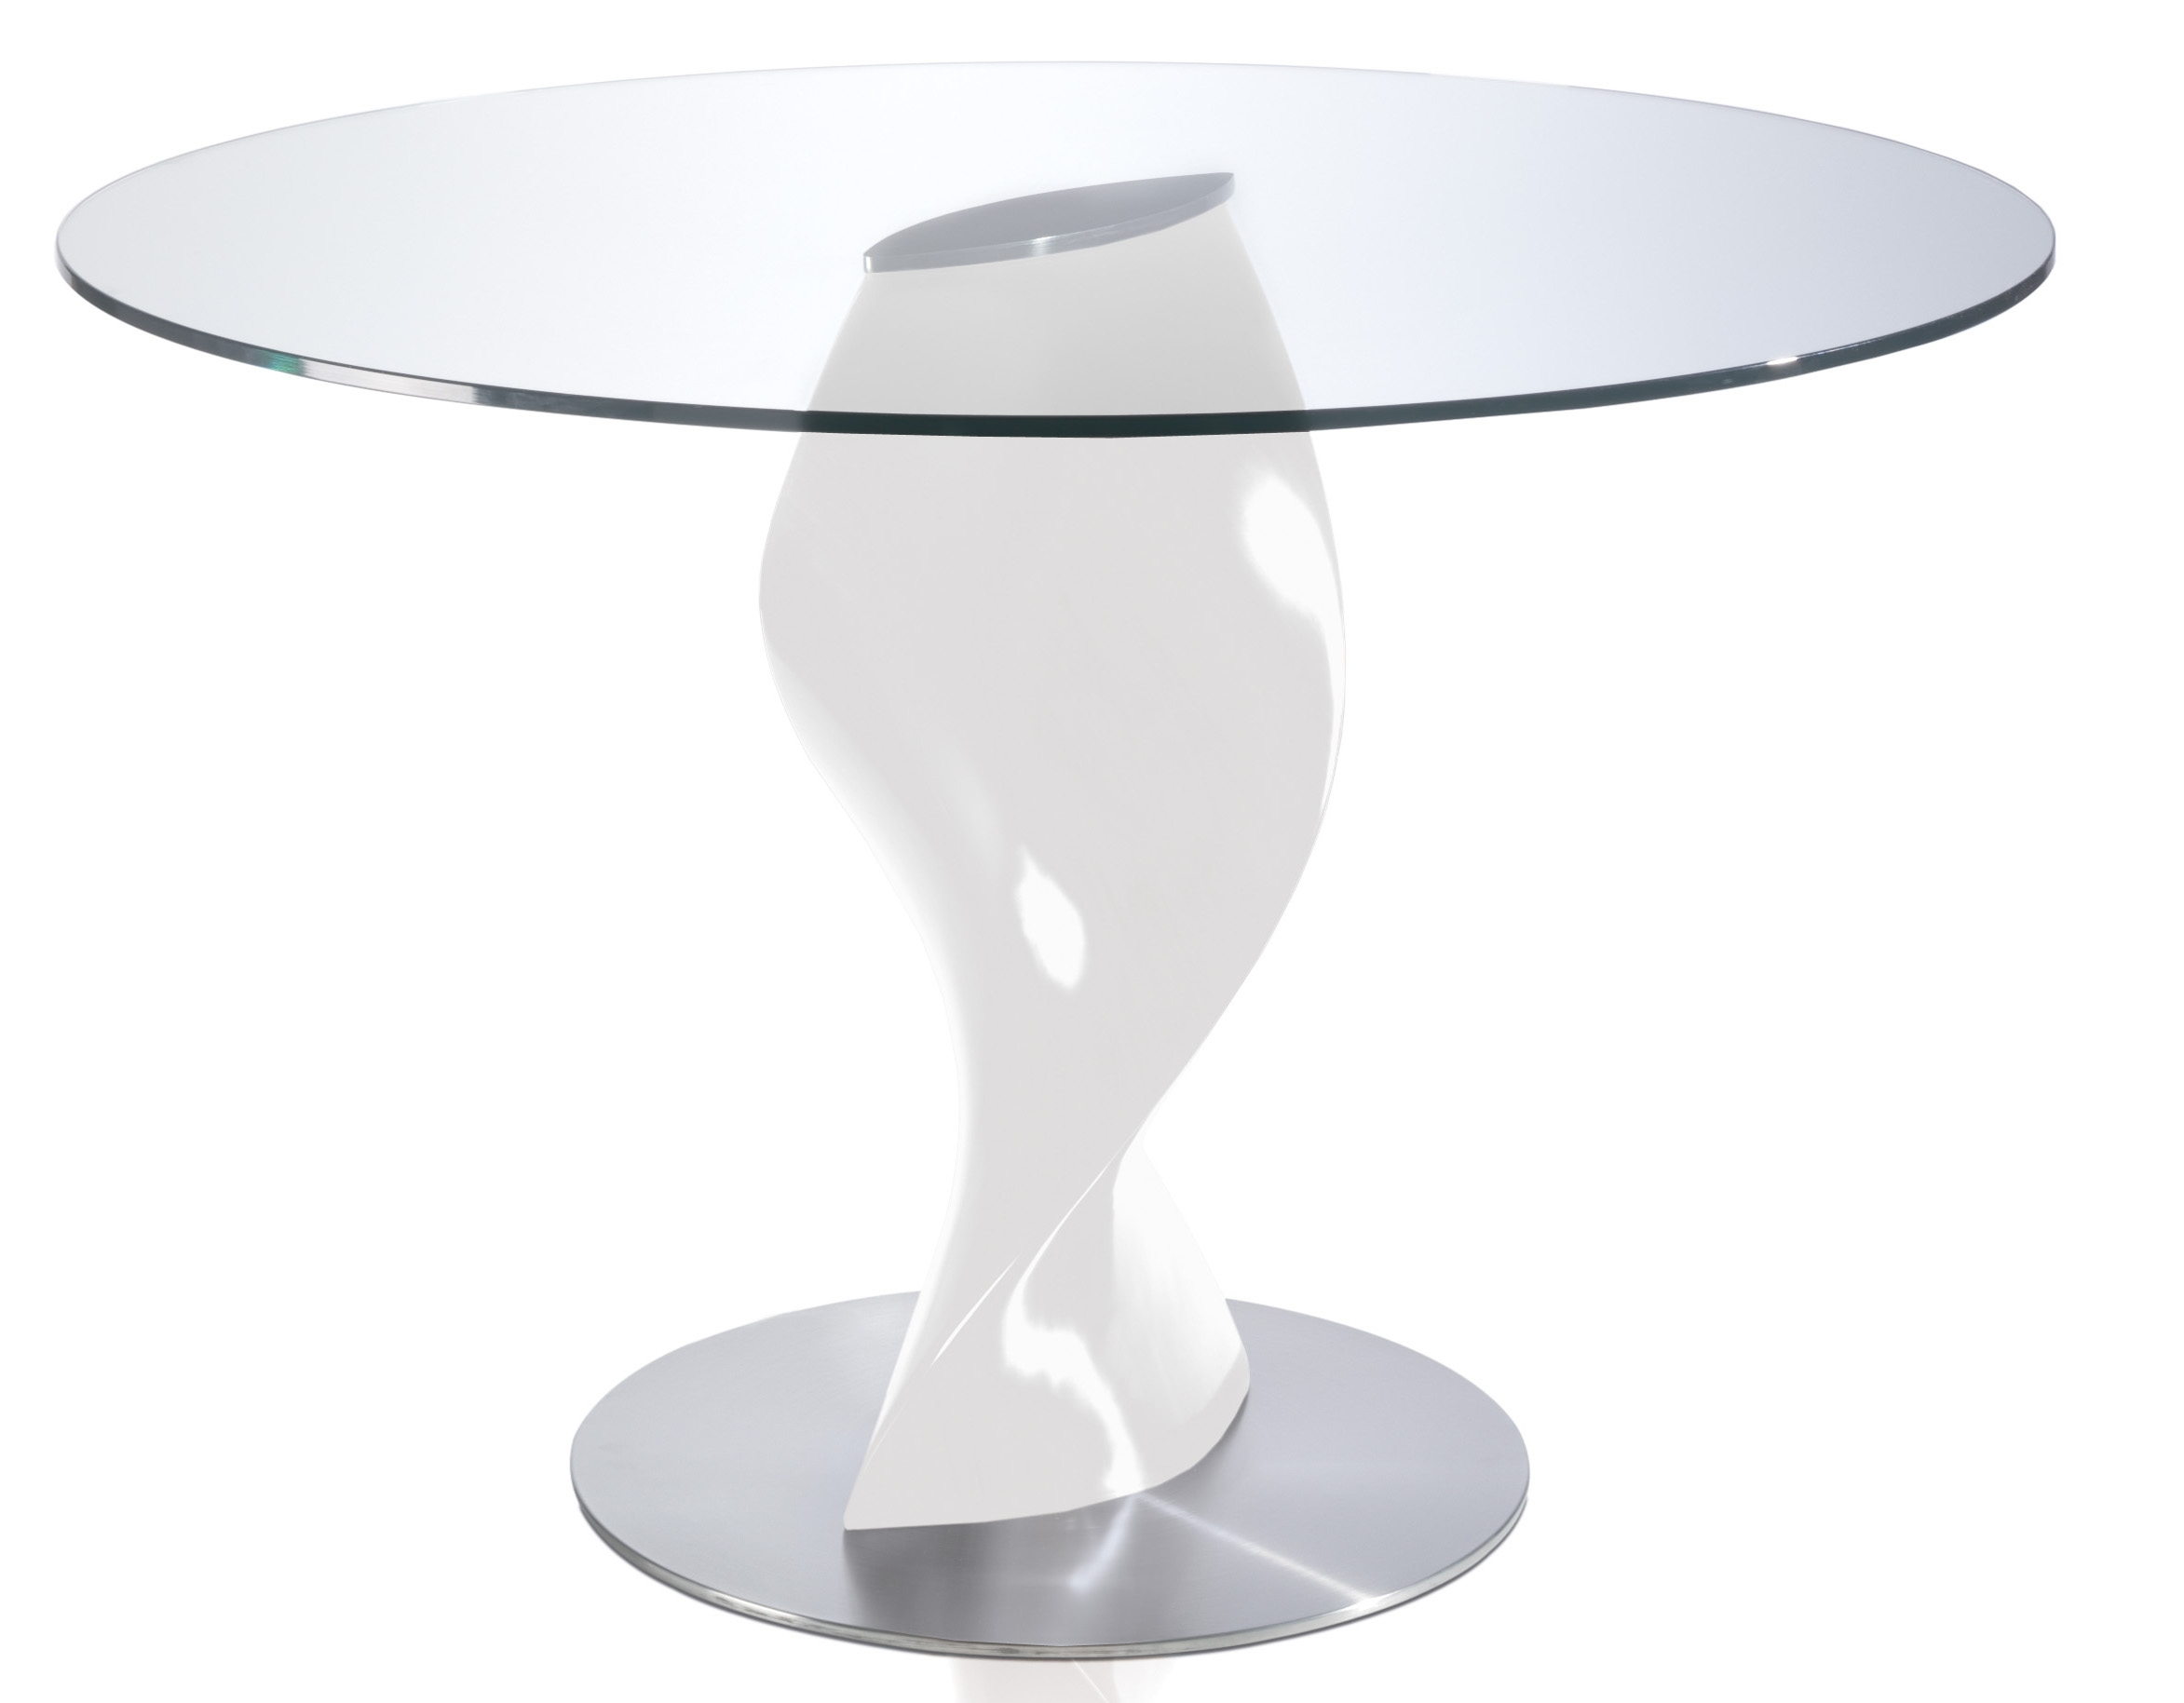 Table ronde laqu e blanc en fibre de verre torsada for Table ronde verre fly